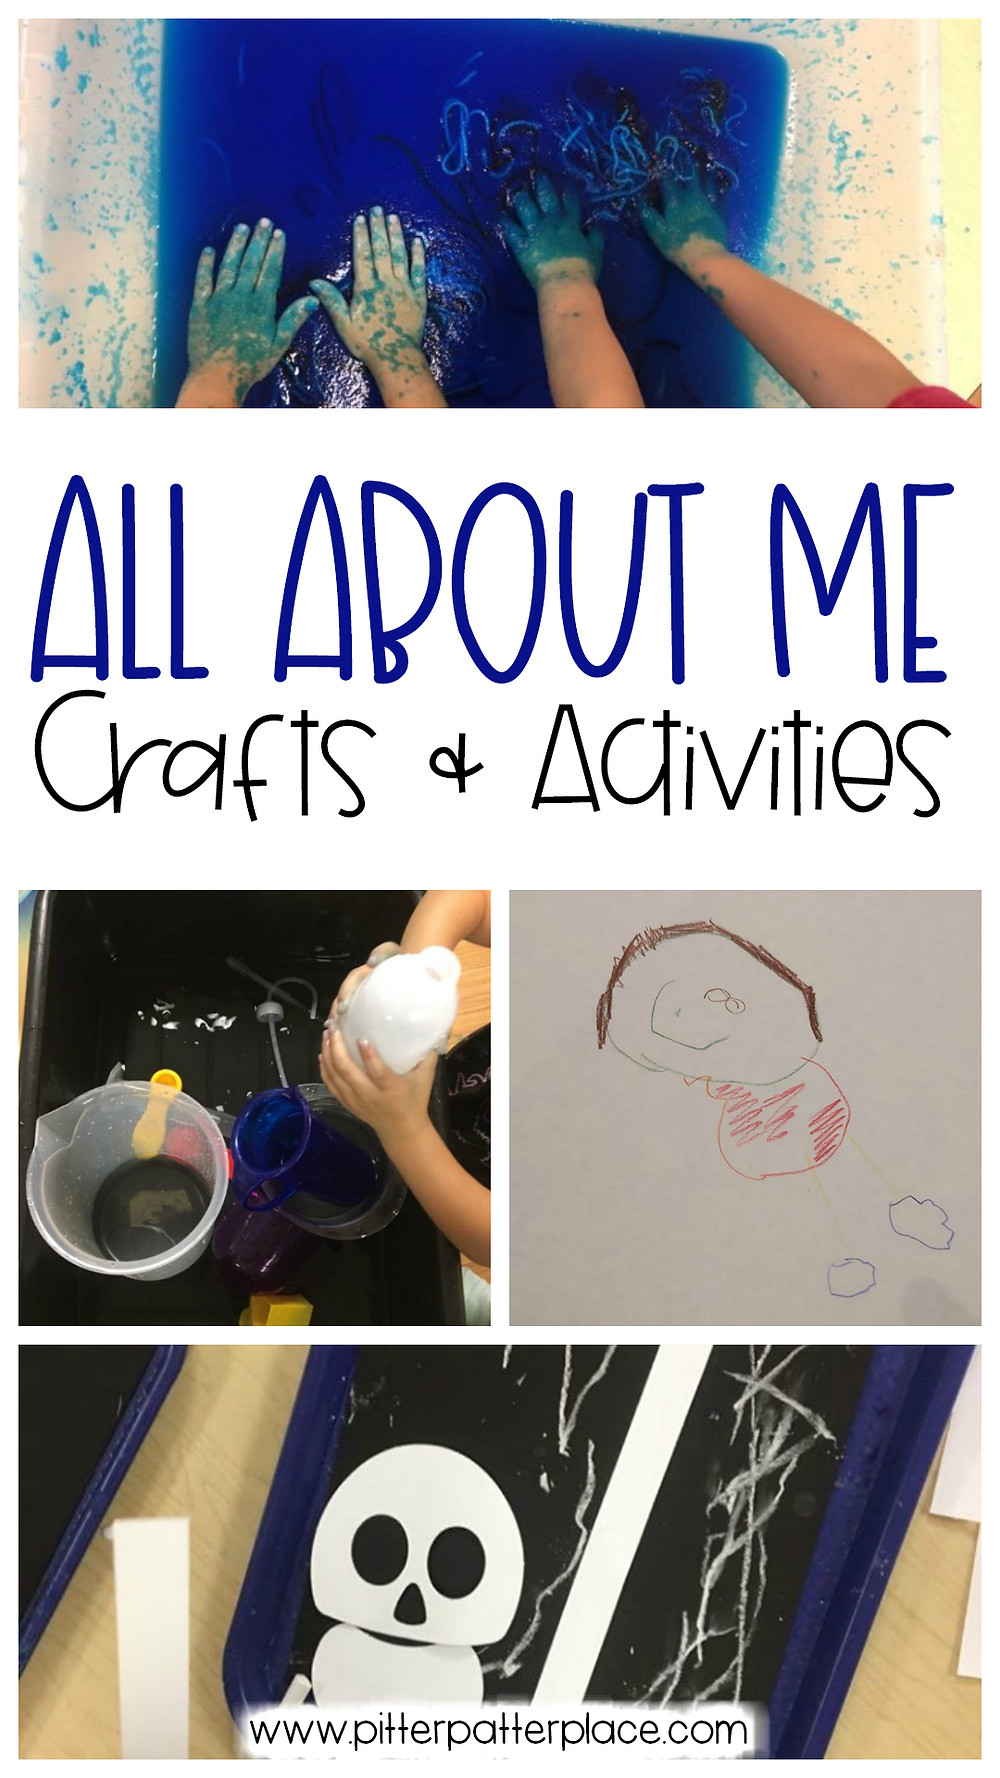 collage of preschool activities with text: All About Me Crafts & Activities